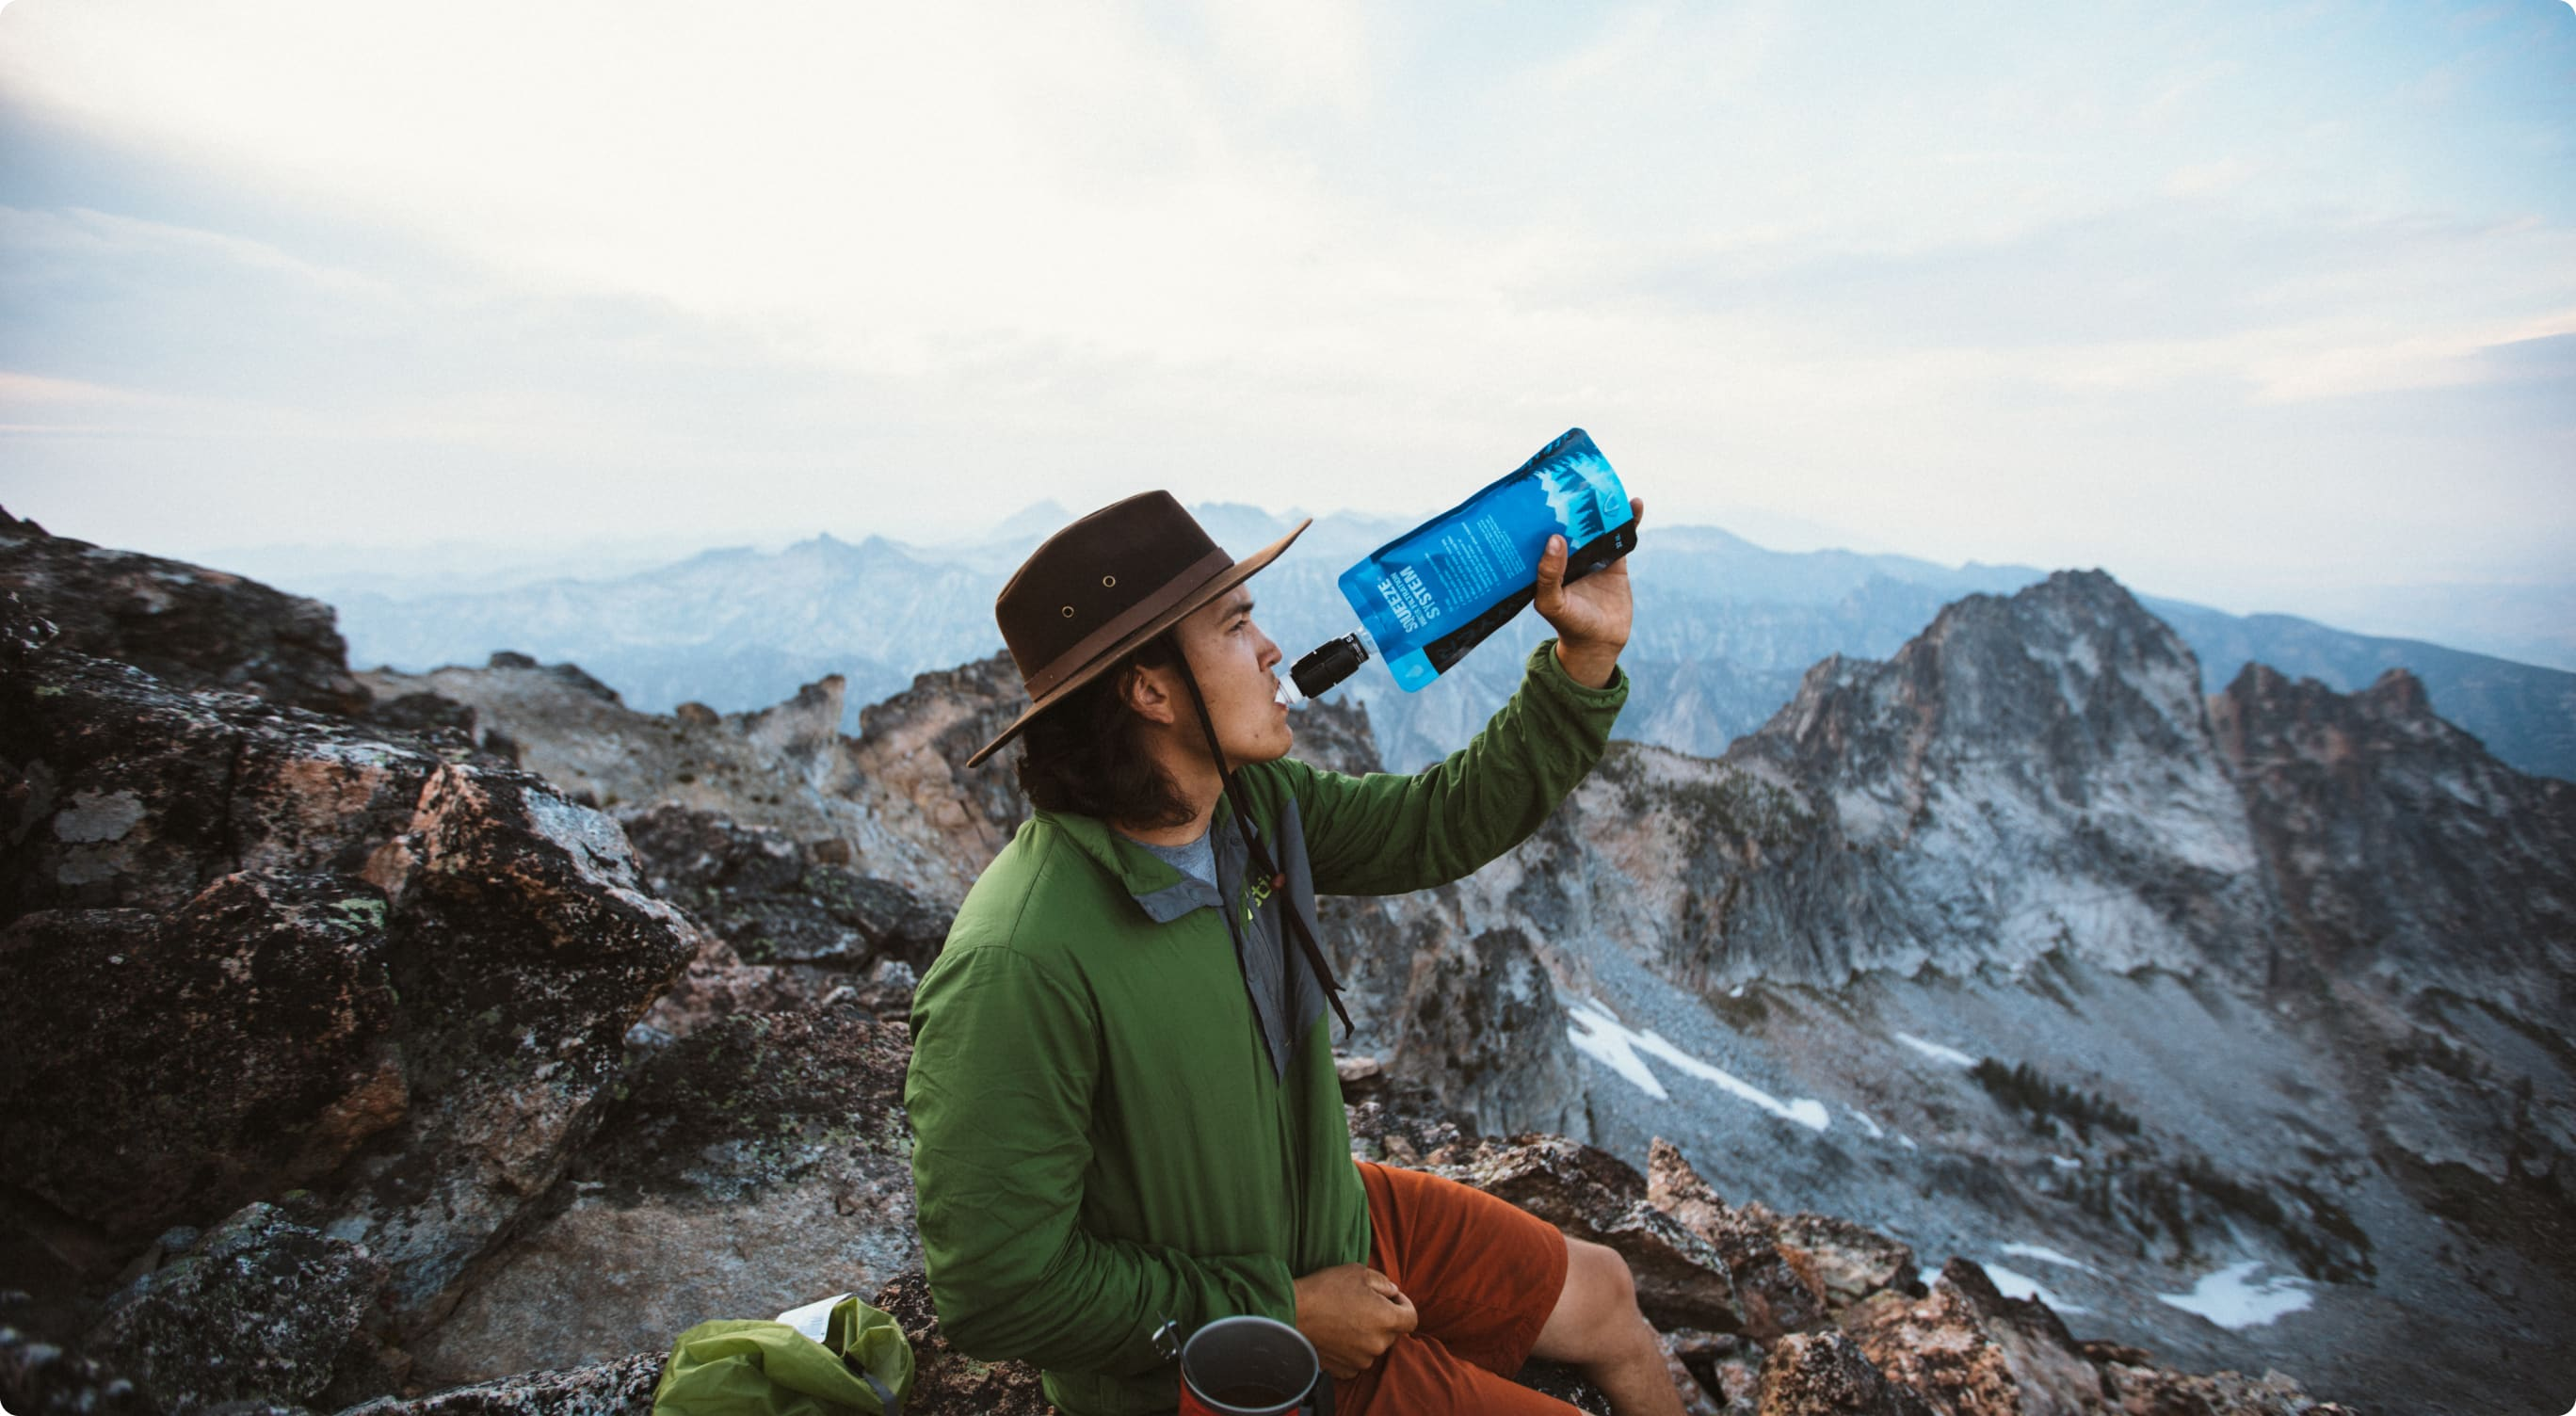 A man drinks from a Sawyer water filter while taking in a panoramic view of mountains.